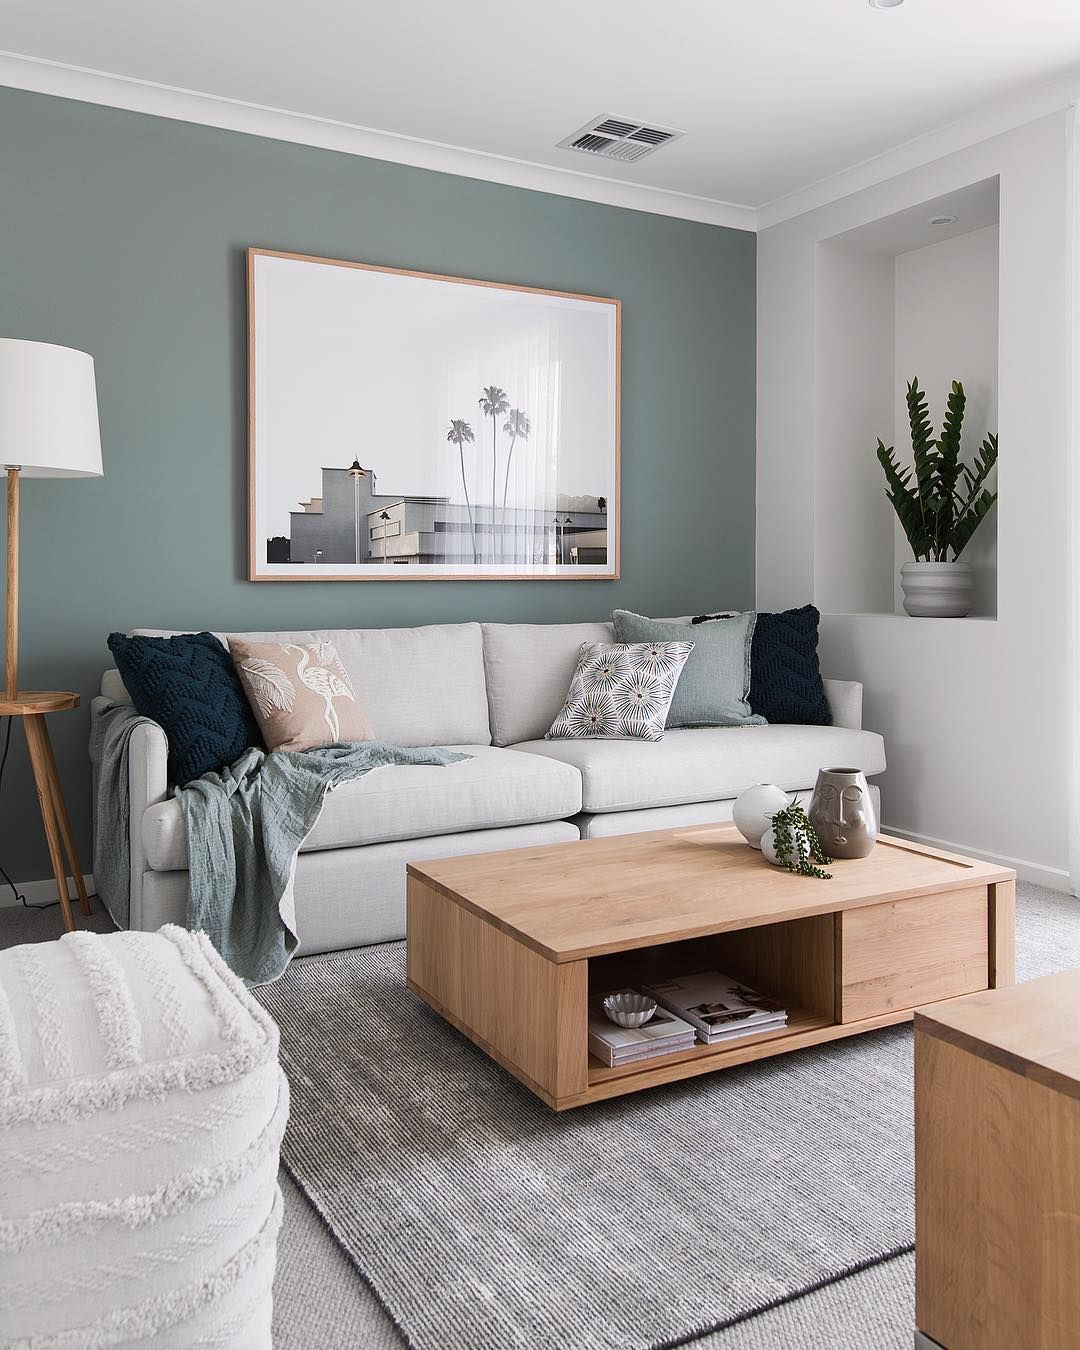 Who Else Is Absolutely In Love With This Feature Wall Colour I Legit Have An En Living Room Color Schemes Popular Living Room Colors Feature Wall Living Room #popular #living #room #wall #colors